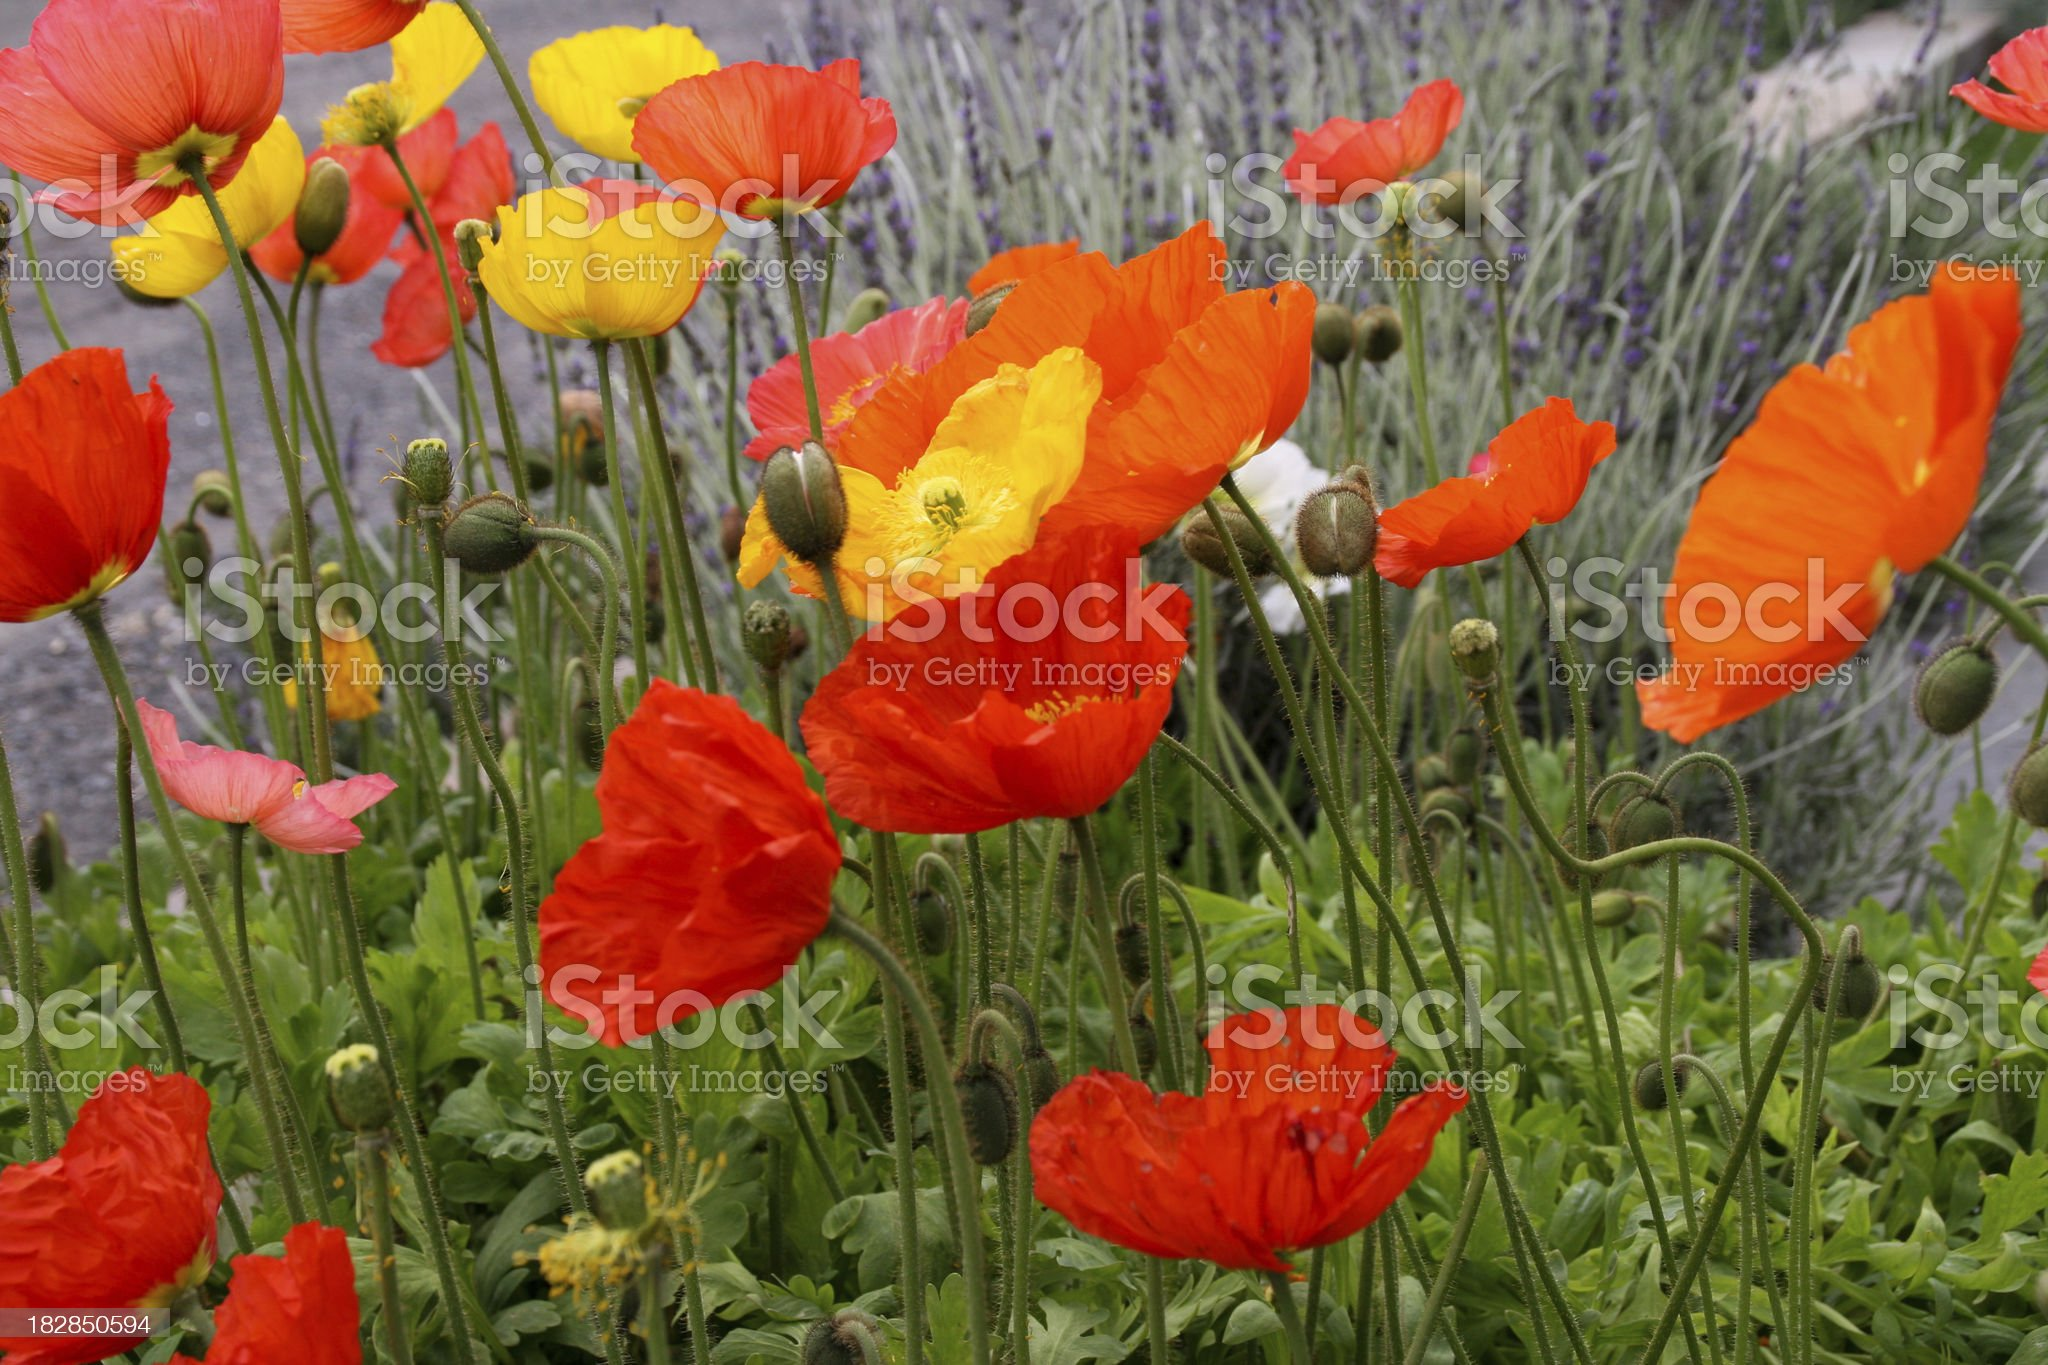 Colorful Array of Poppies royalty-free stock photo